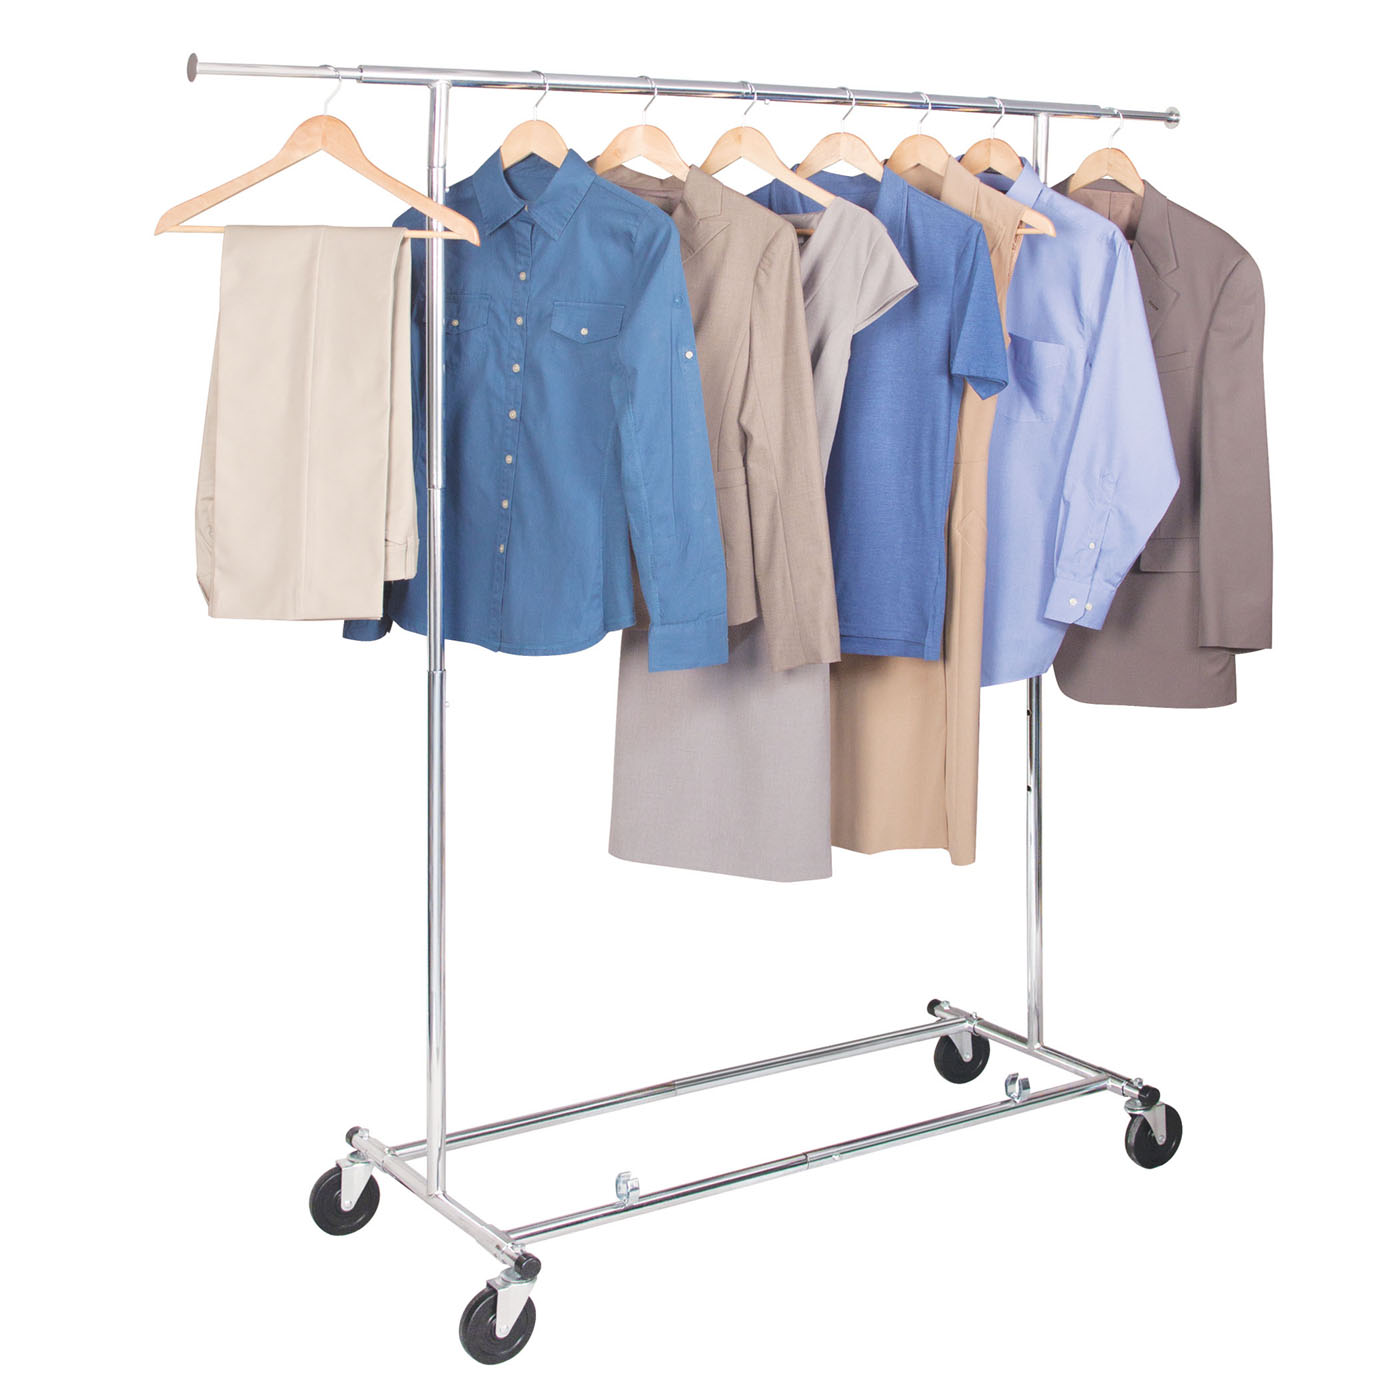 Le Meilleur Commercial Chrome Garment Rack In Clothing Racks And Wardrobes Ce Mois Ci